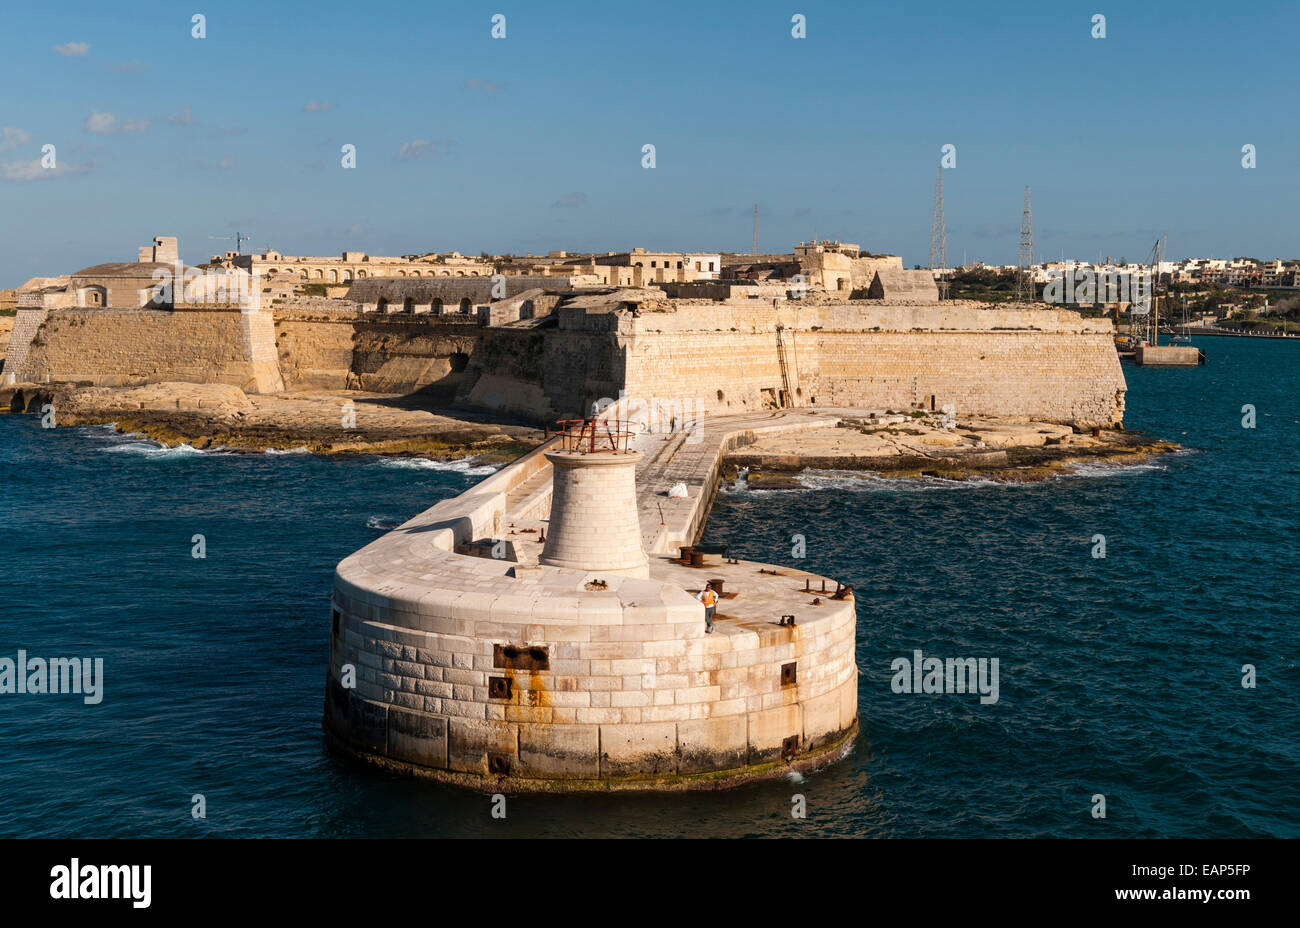 Valletta, Malta - entrance to the Grand Harbour. The Ricasoli lighthouse and breakwater with Fort Ricasoli (Forti - Stock Image